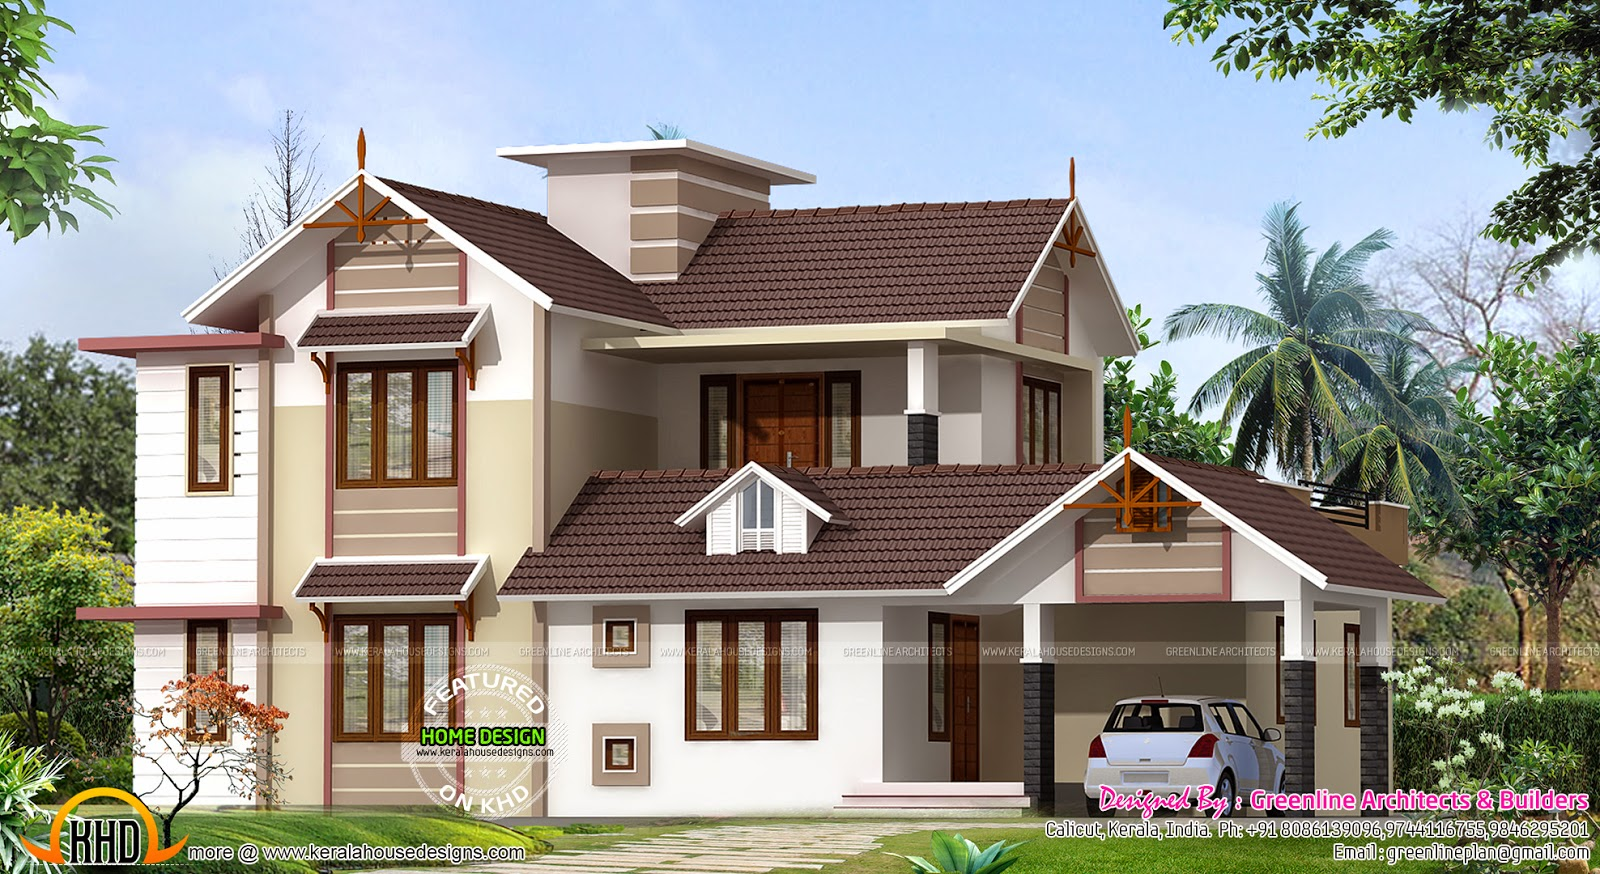 2400 sq ft new house design kerala home design and floor plans - New house design ...